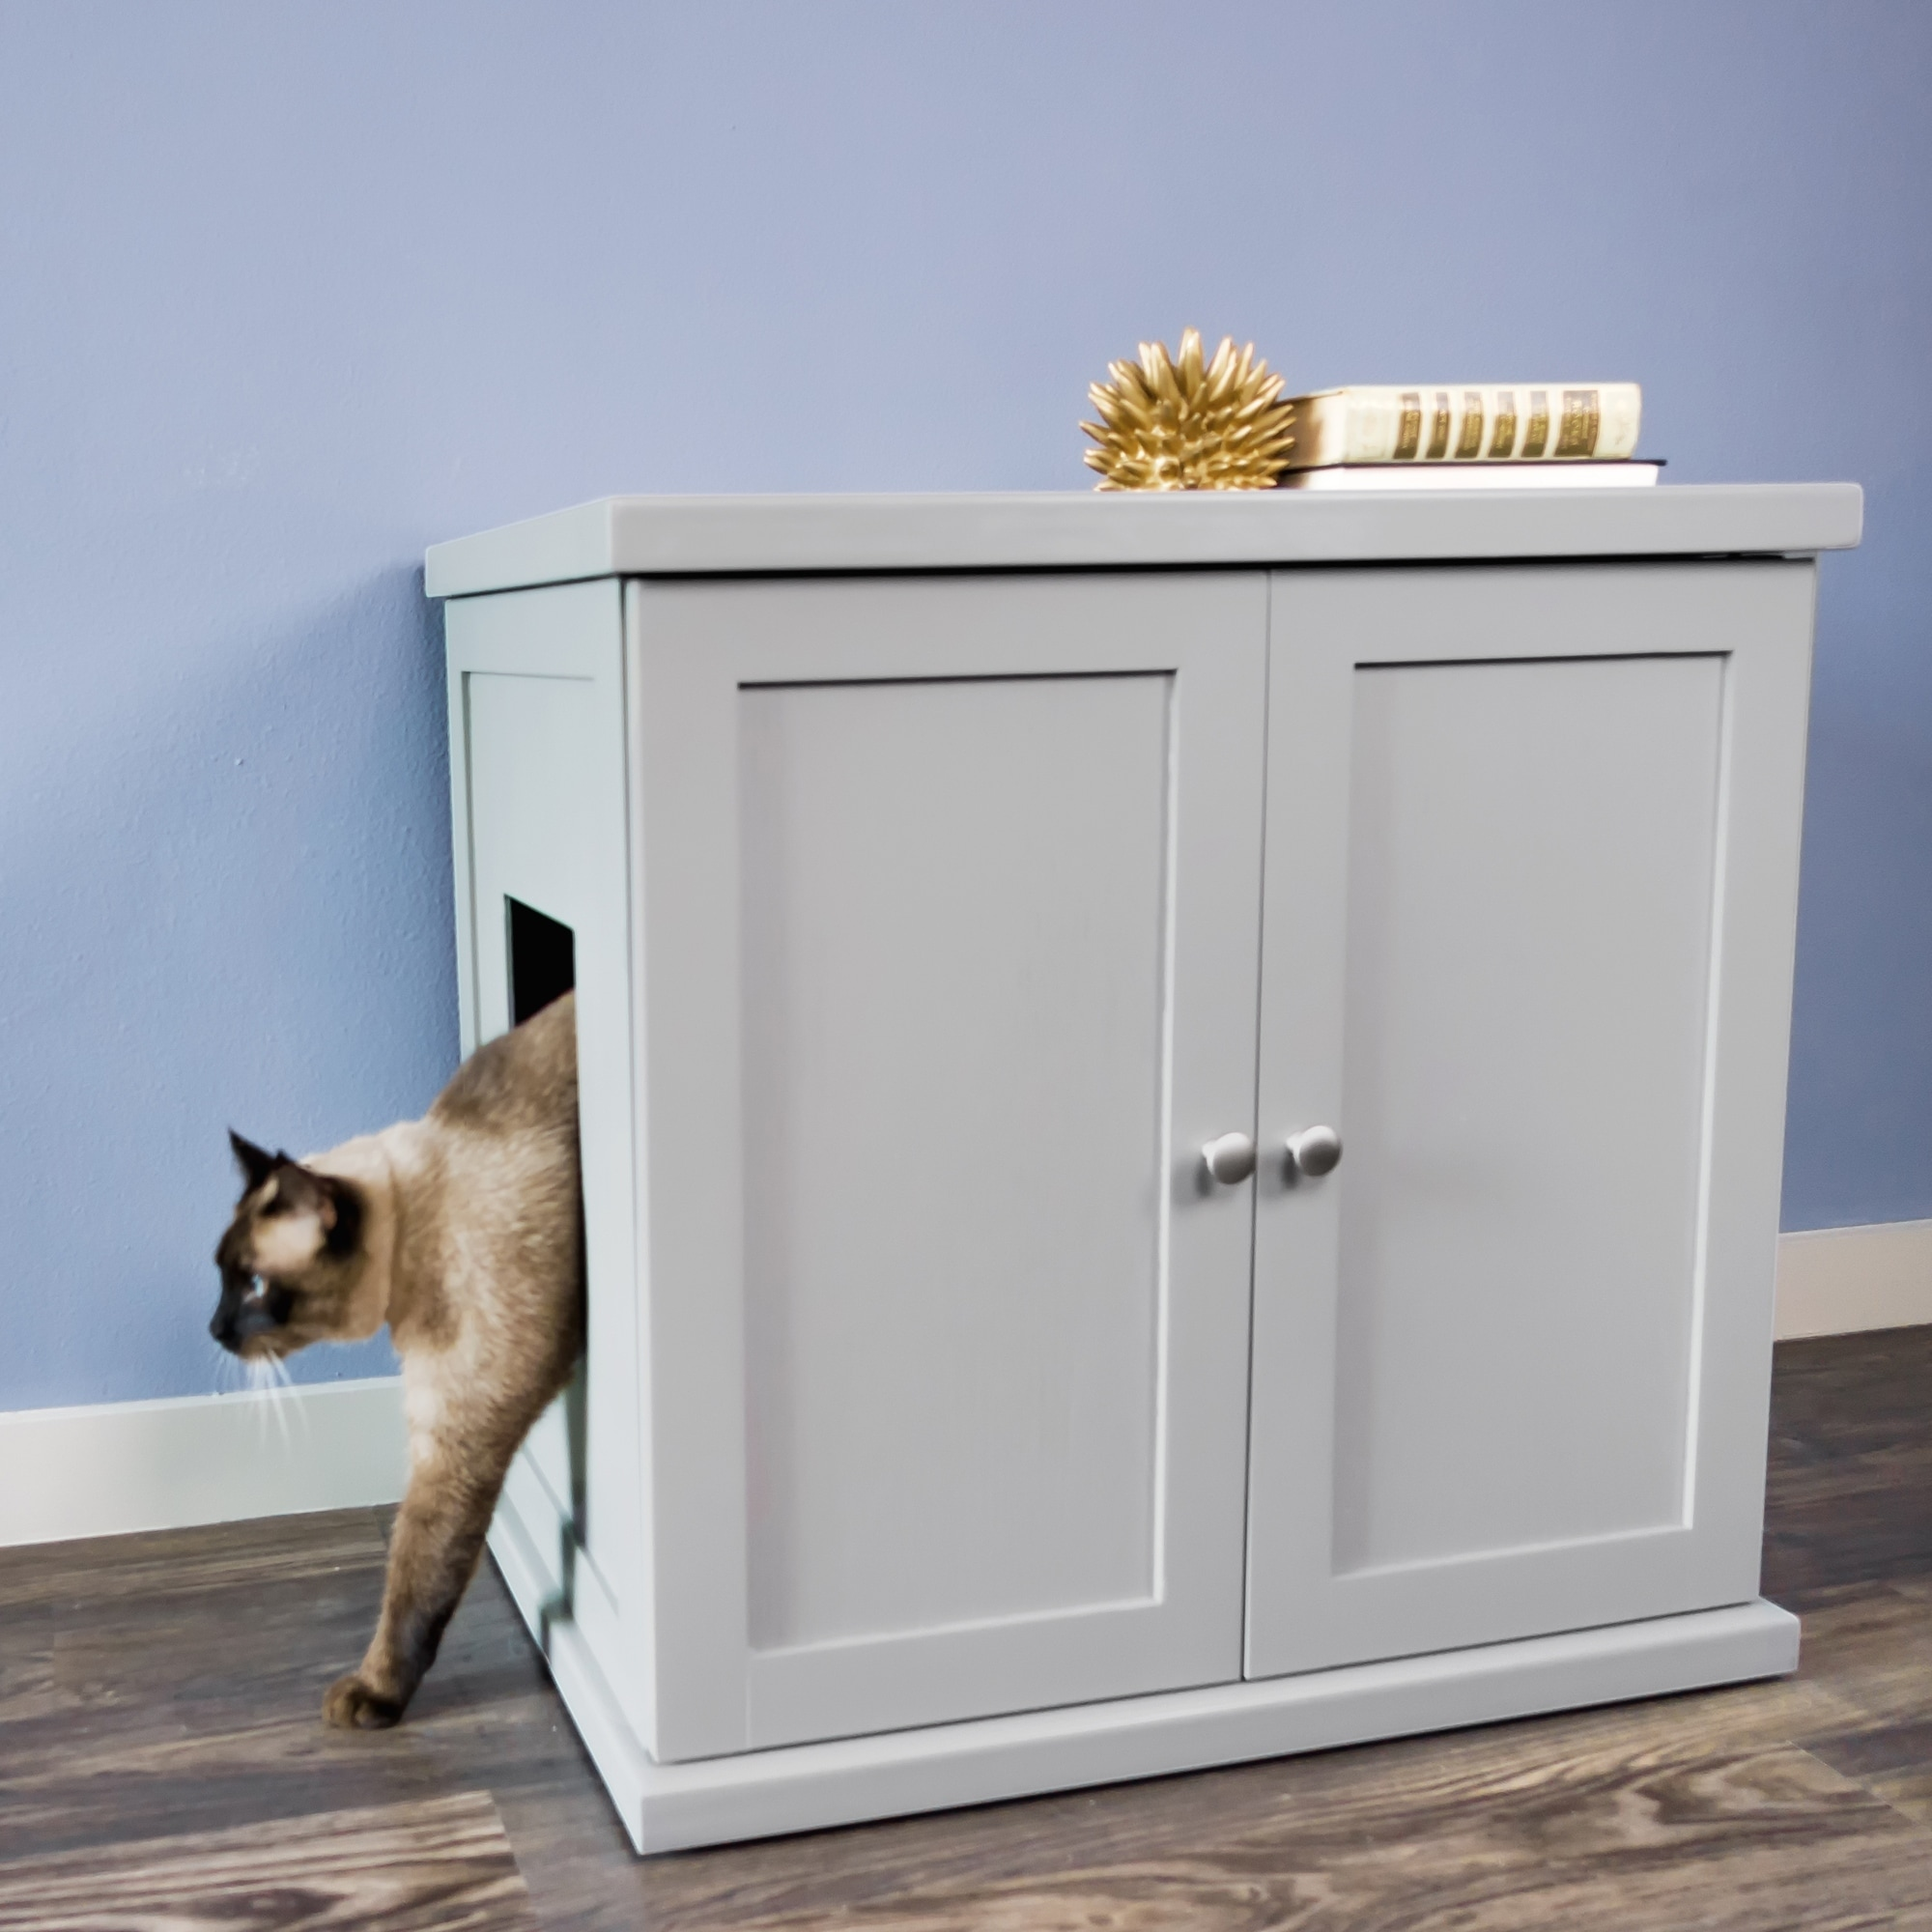 Enclosed Litter Box Wooden End Table